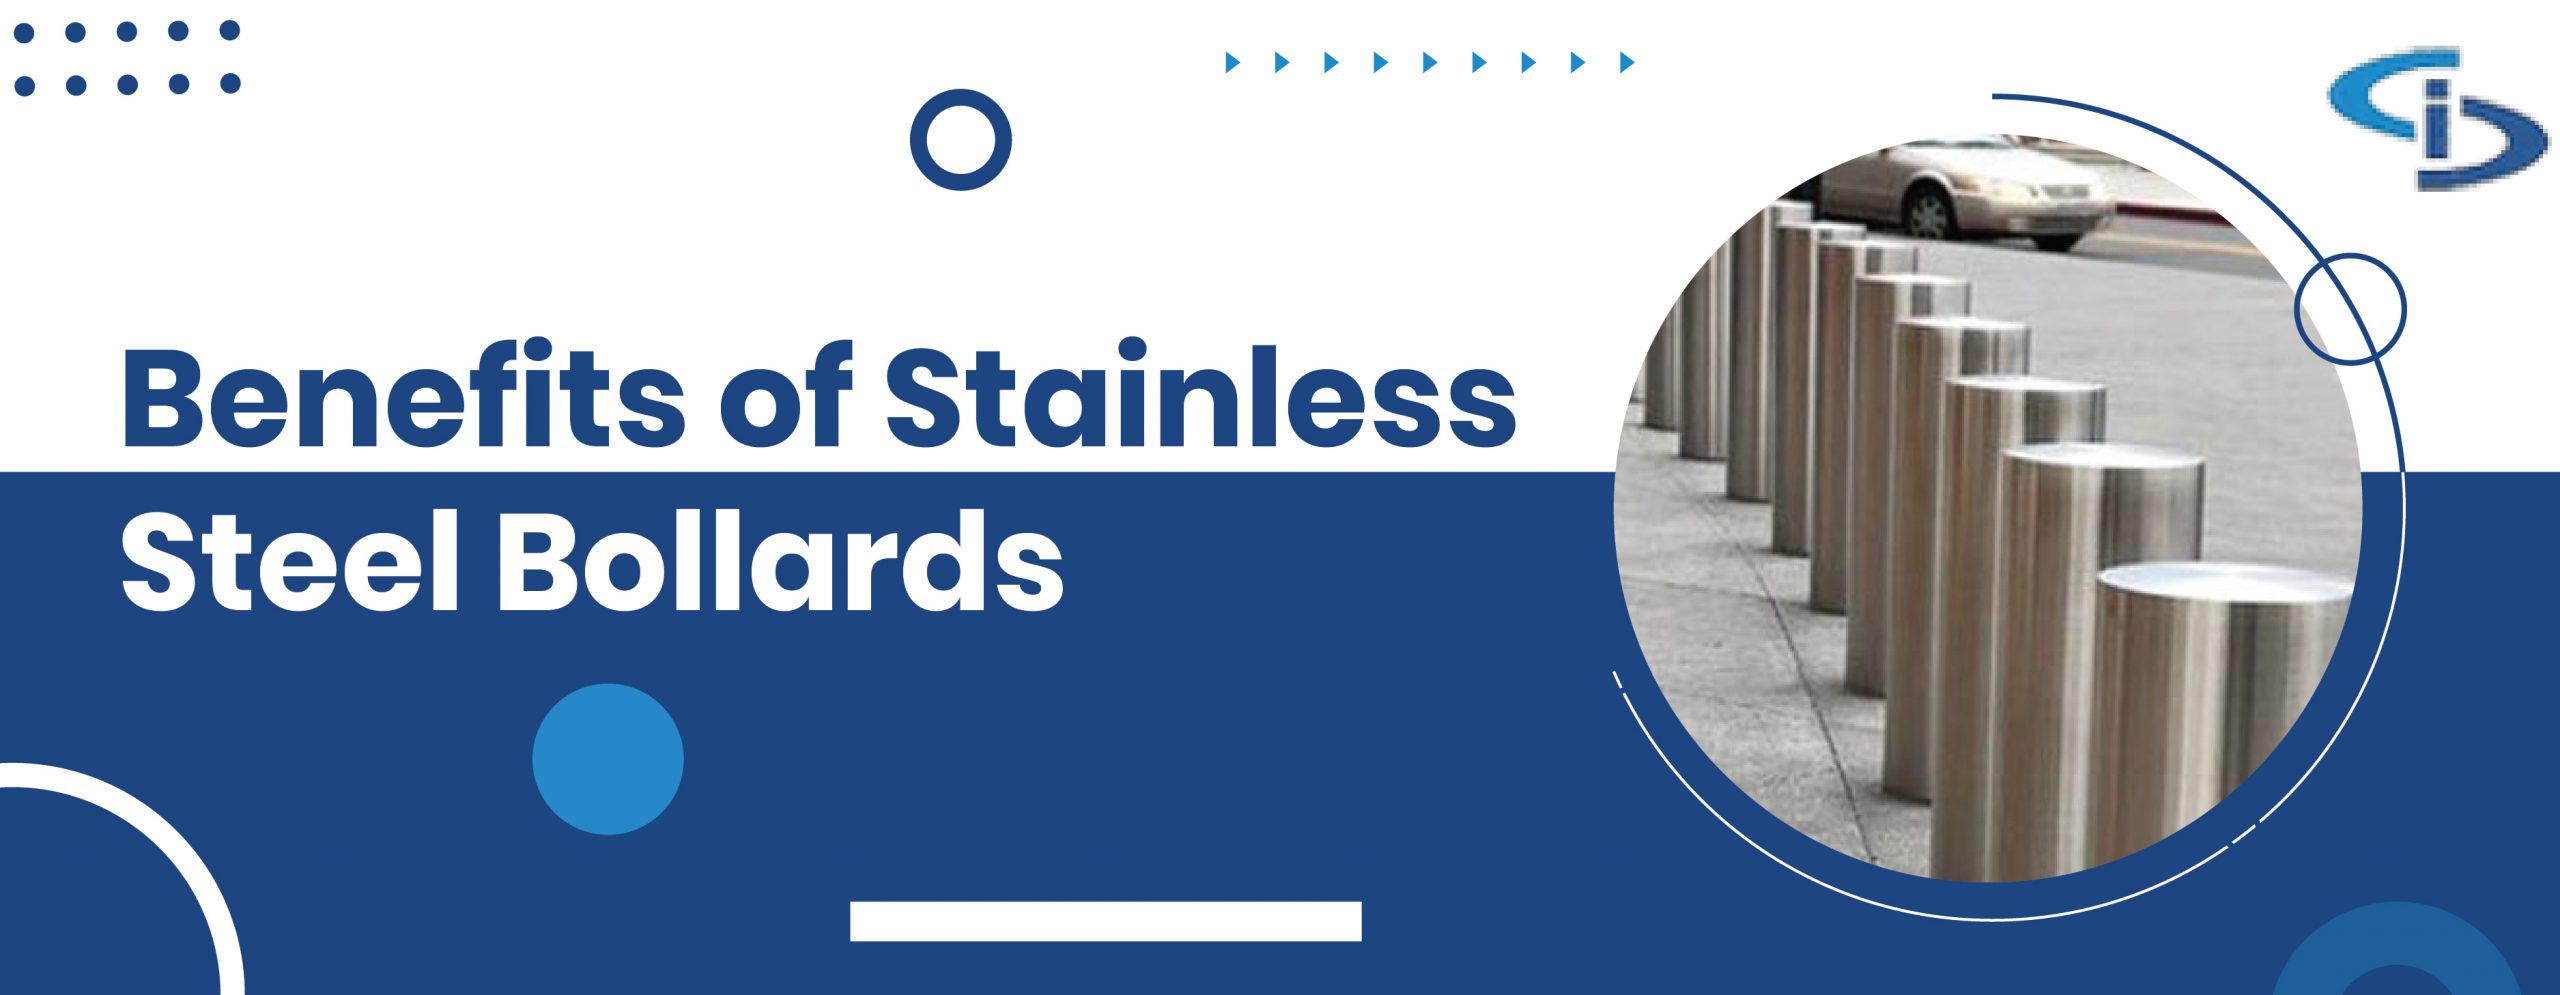 Beneftes of stainless steel bollards